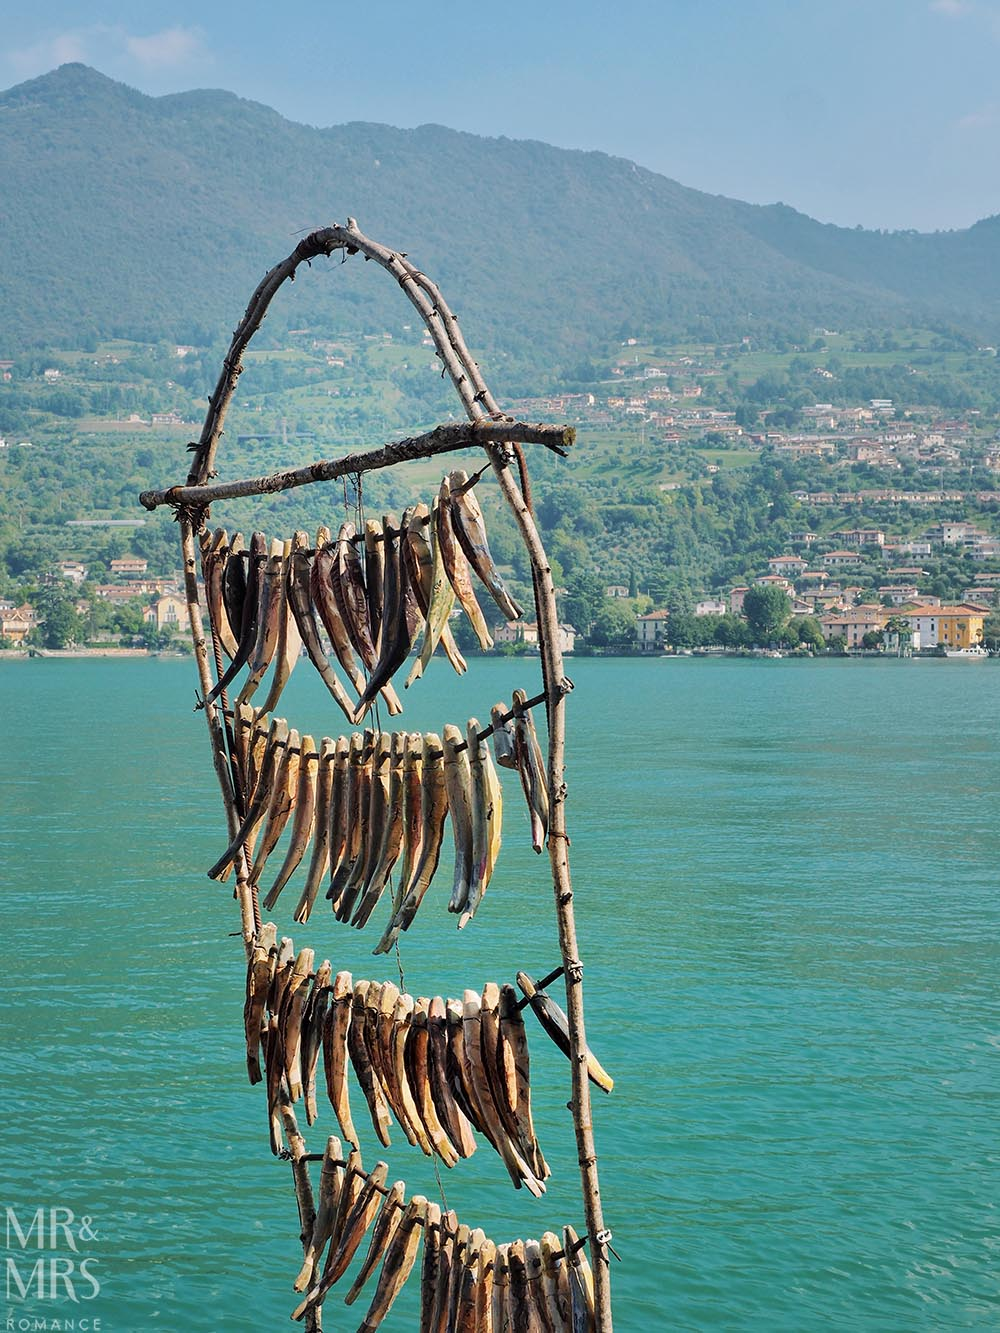 Monte Isola, Lake Iseo, Italy - drying fish